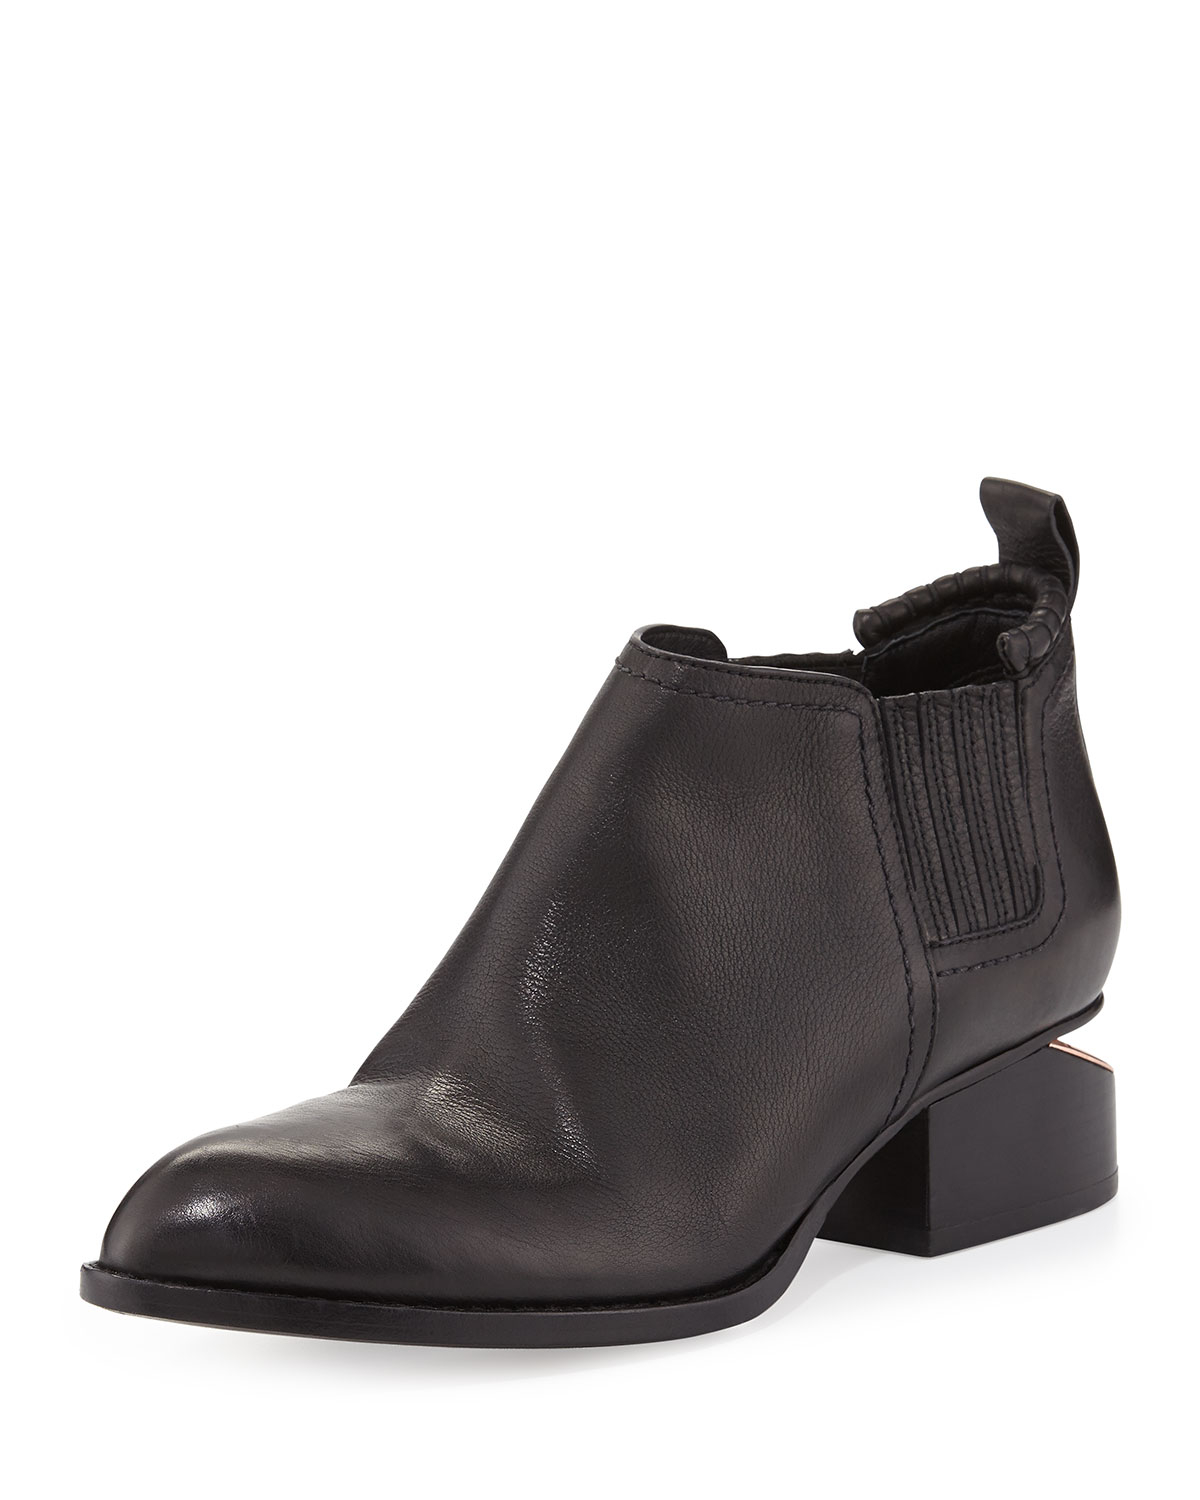 wang kori leather lift heel ankle boot in black